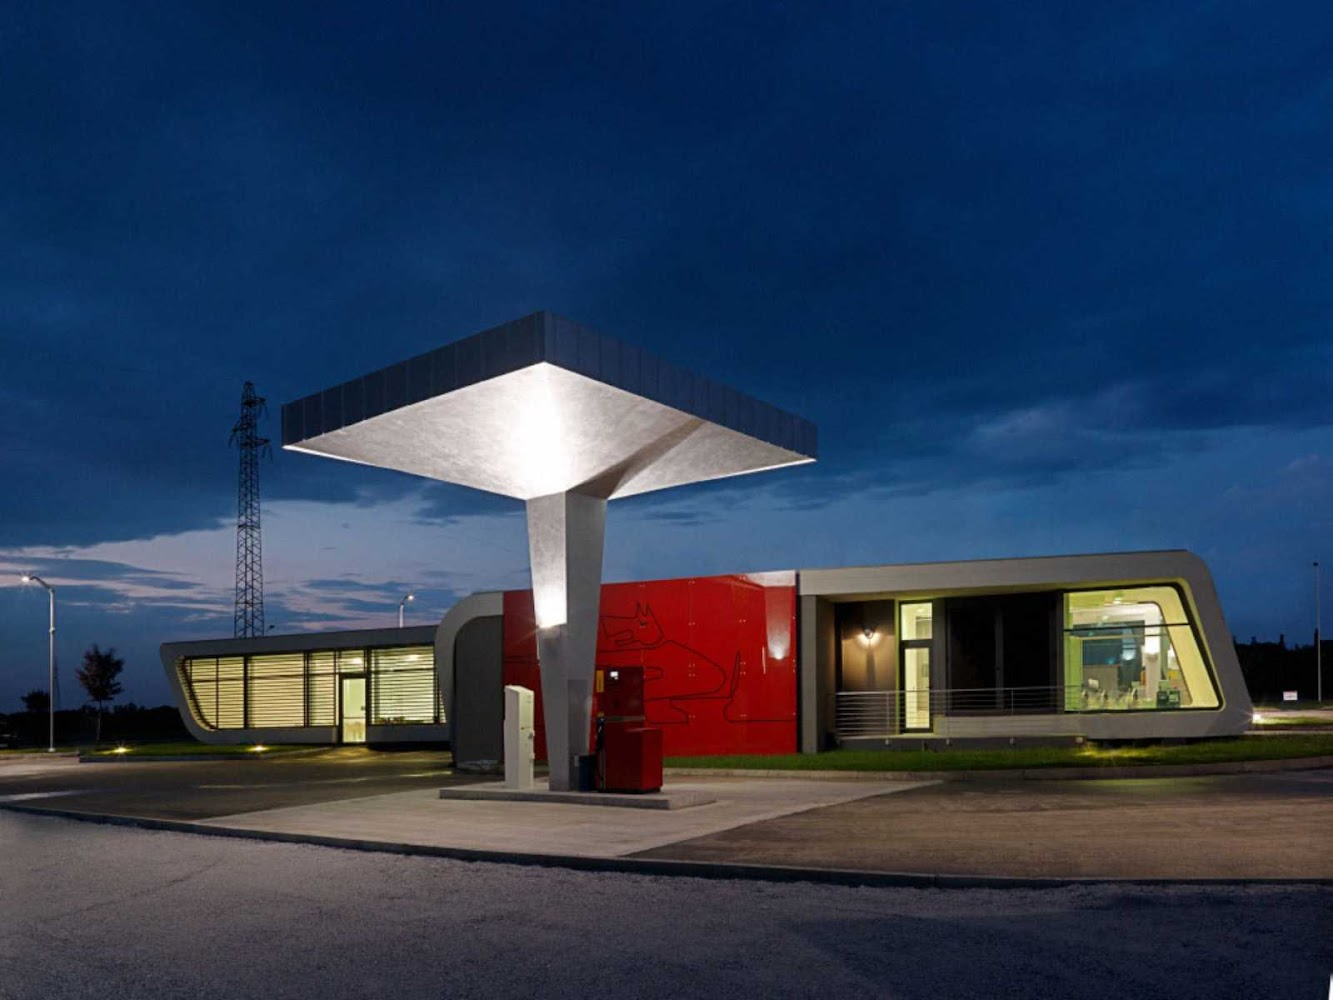 Italy: GAZOLINE STATION by DAMILANO STUDIO ARCHITECTS